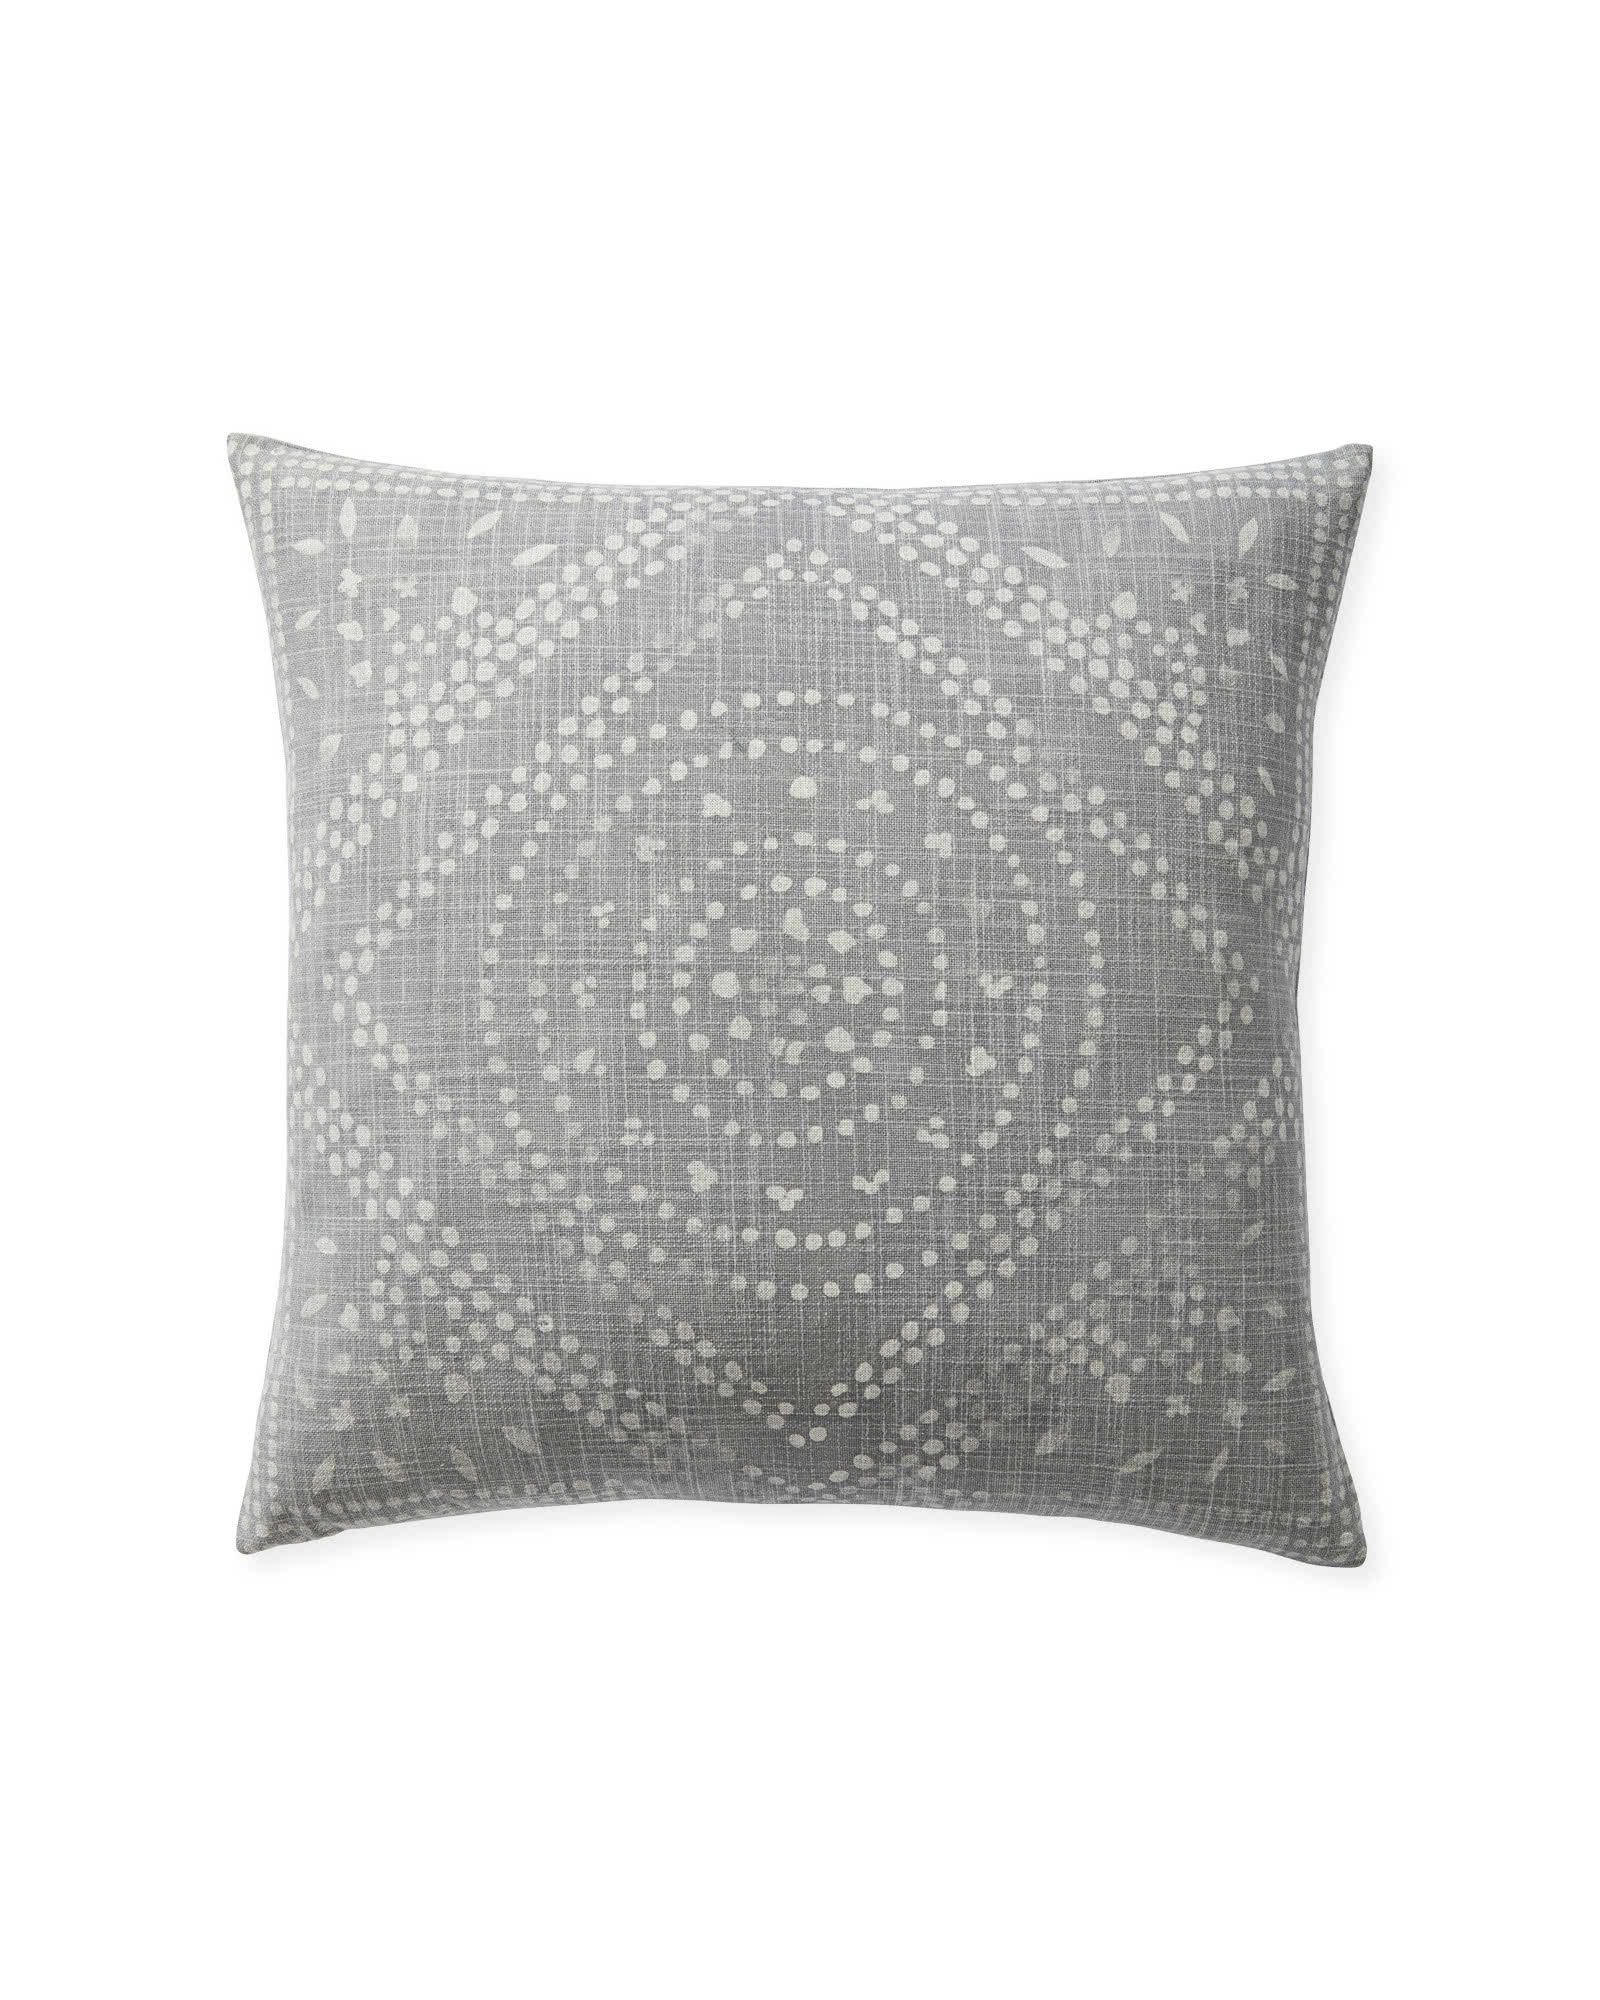 Camille Diamond Medallion Pillow Cover - Charming European Country Interior Design Inspiration & Inspiring June Favorites With Photos of Beautiful Interiors As Well As Ideas for Where to Shop.